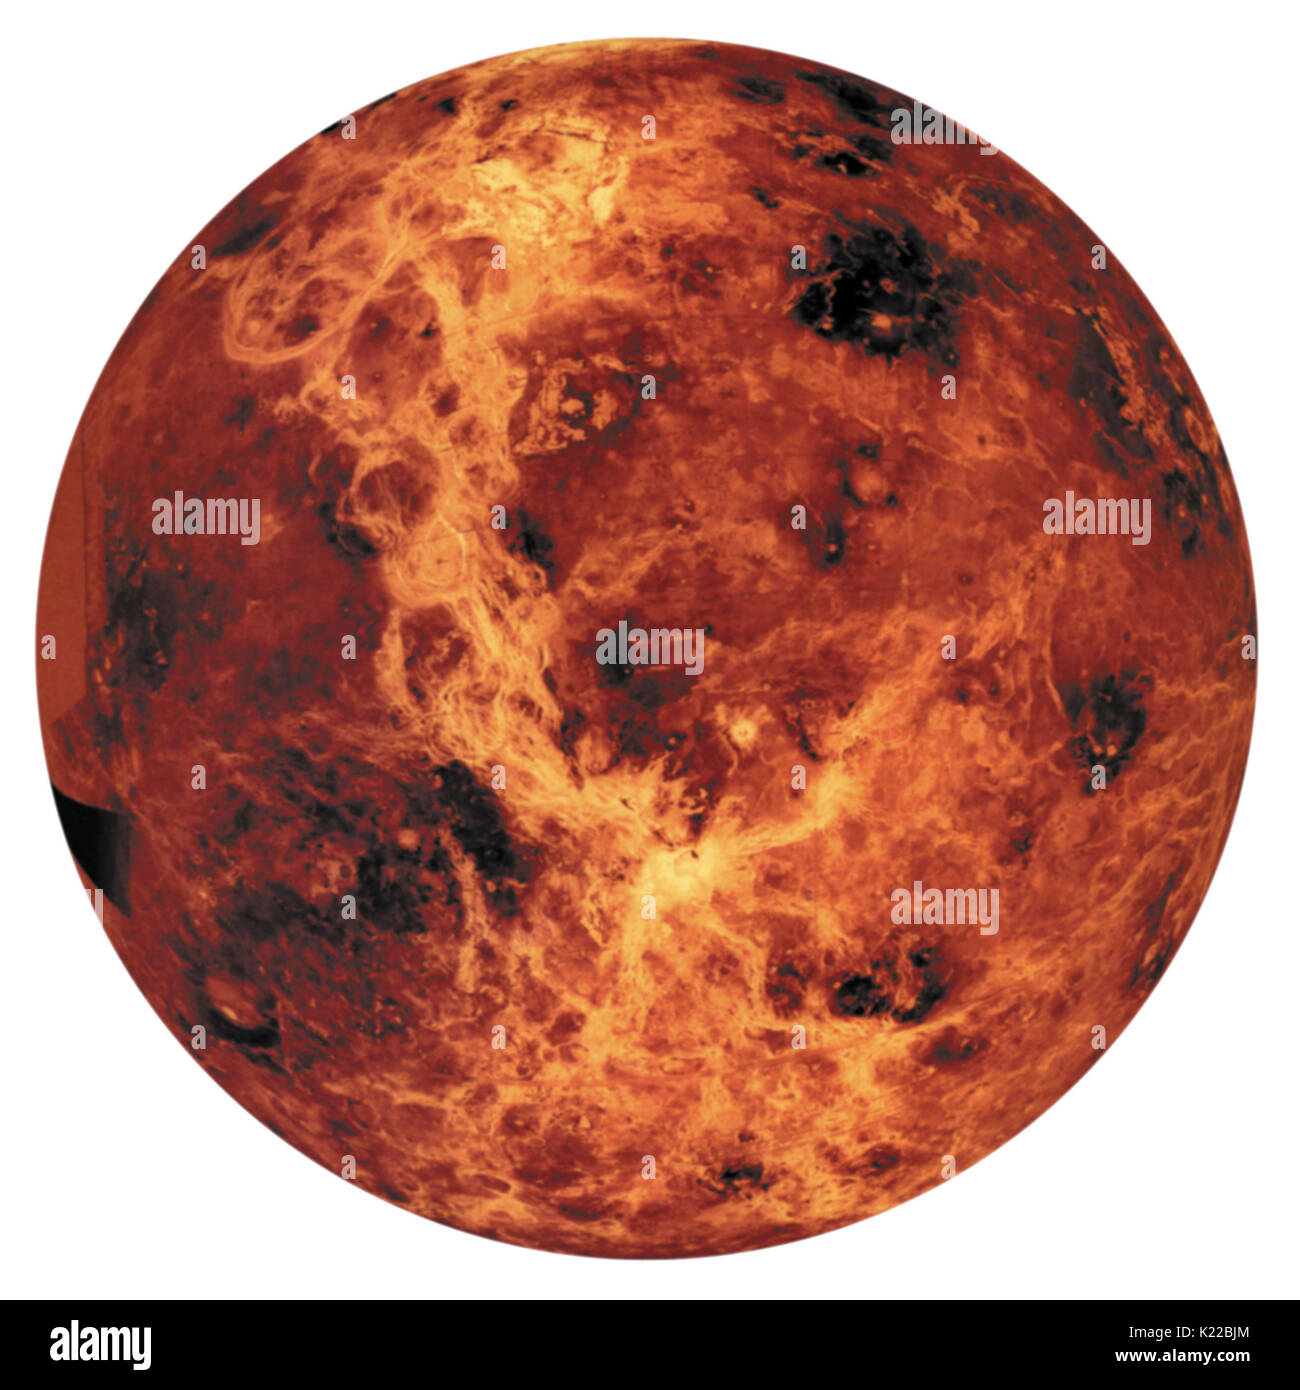 Venus has long been considered the planet with the most features in common with Earth. It is almost the same size, its orbit is about the same distance from the Sun, it has a thick atmosphere, and it has the same density and chemical composition. - Stock Image